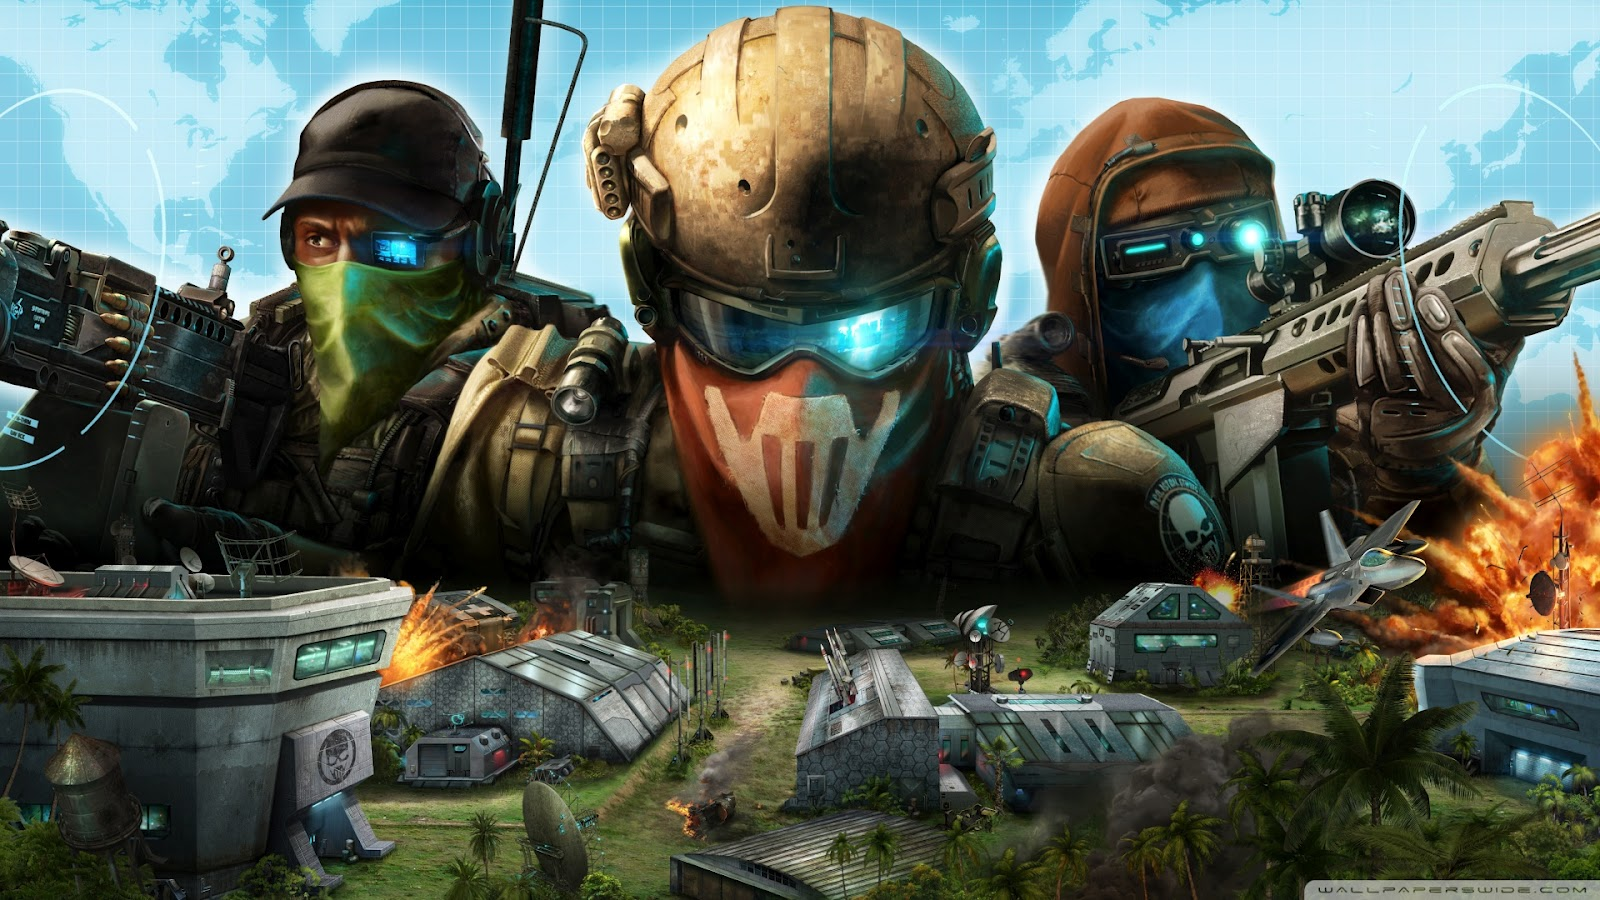 Your Wallpaper Ghost Recon Future Soldier Wallpaper 1600x900